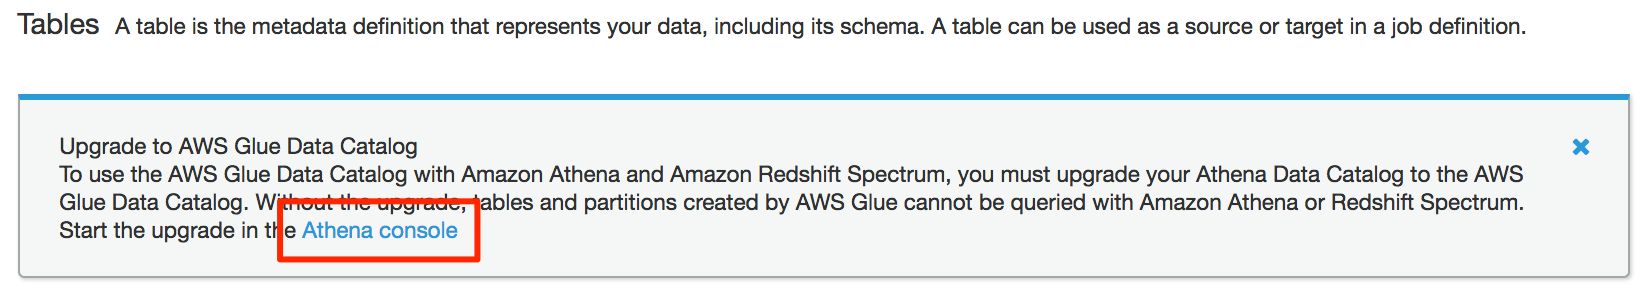 20170919-aws-glue-data-catalog-upgrade1